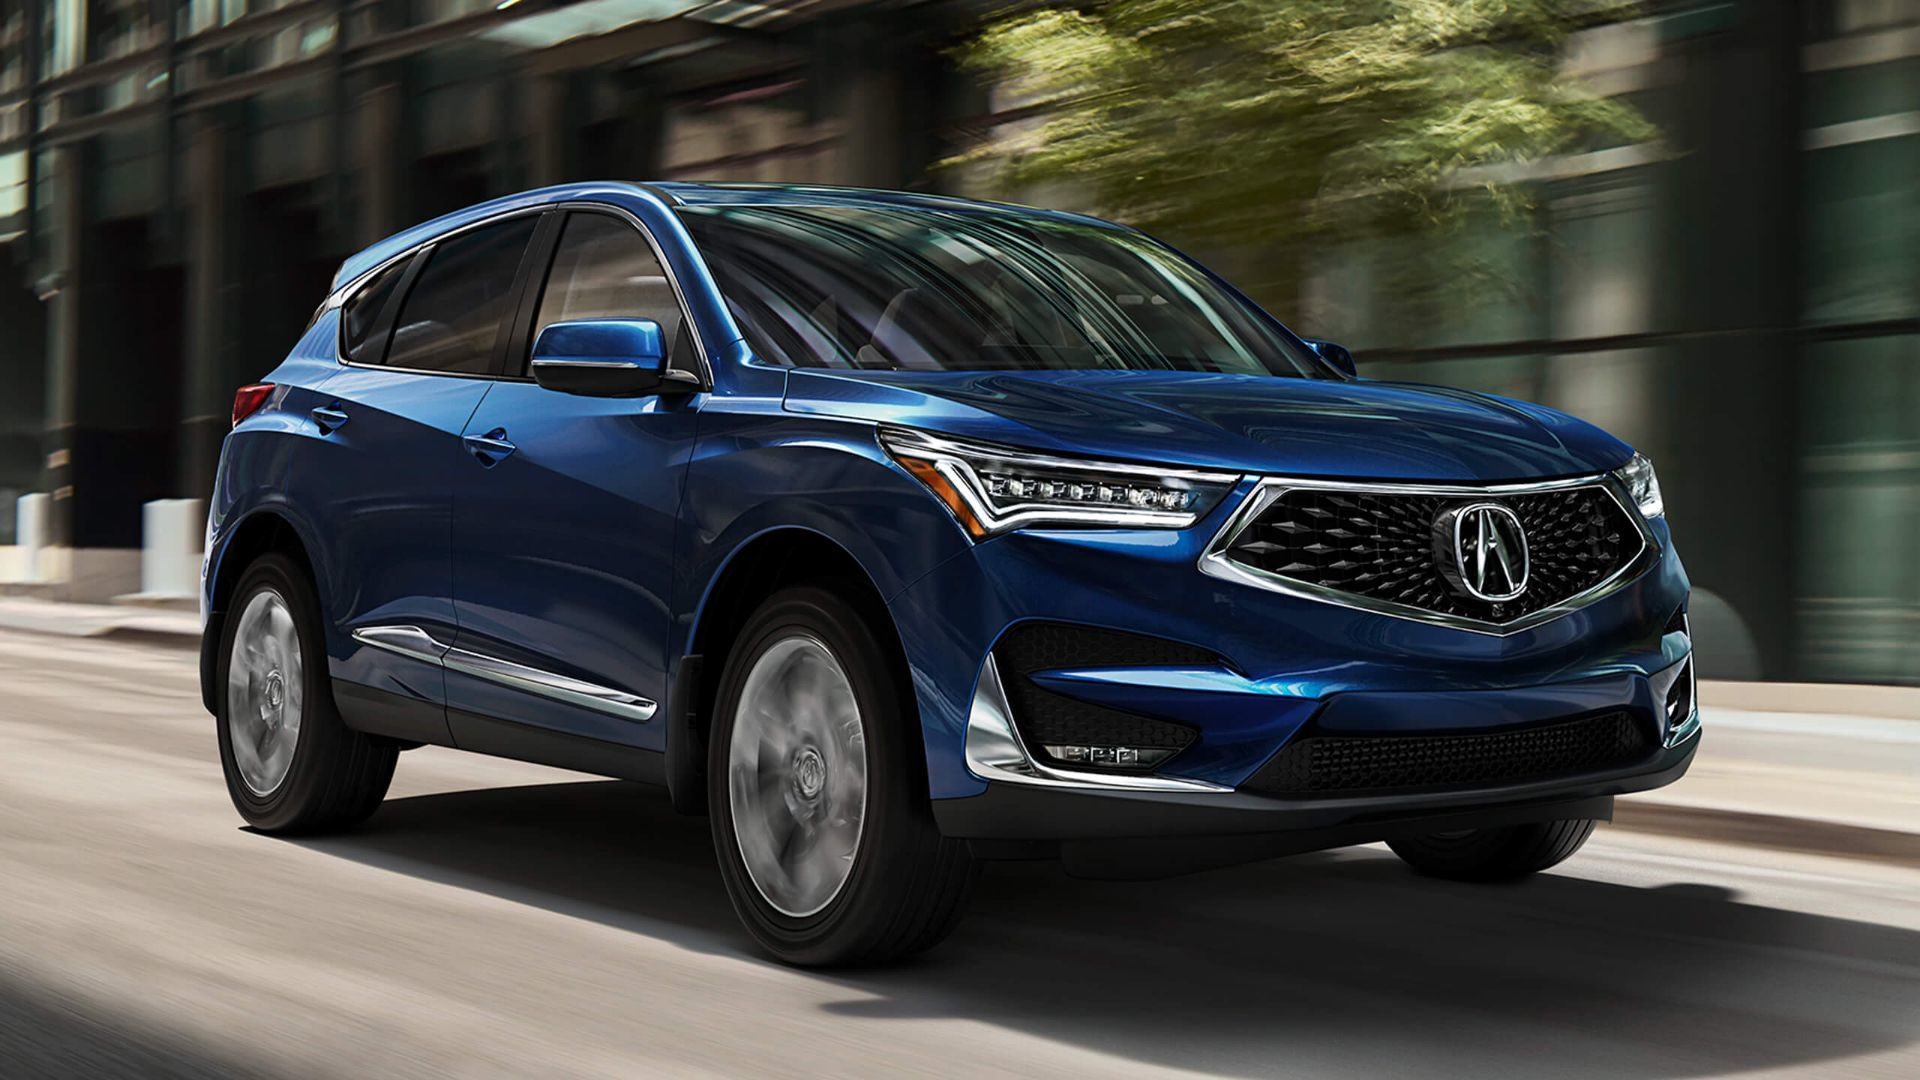 2020 Acura RDX: Next-Generation Design